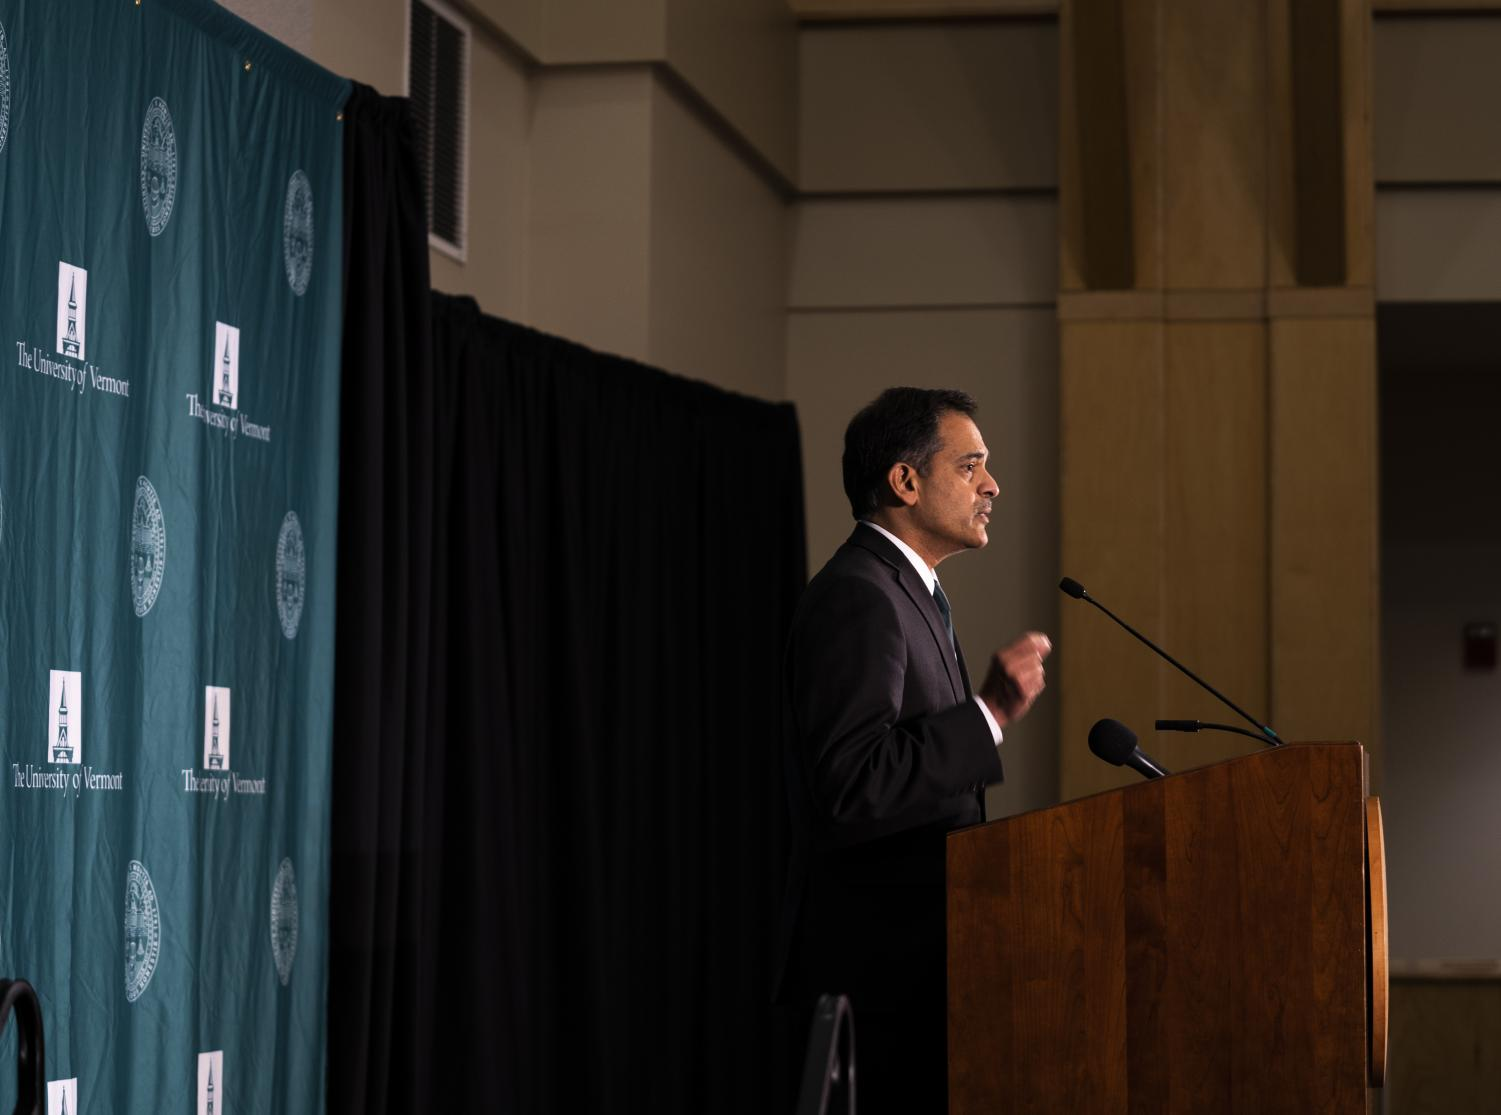 President Suresh Garimella addresses assembled media at a press conference, Nov. 14. There will be no tuition increase for the 2020-21 school year pending board of trustees approval, Garimella said at the conference.